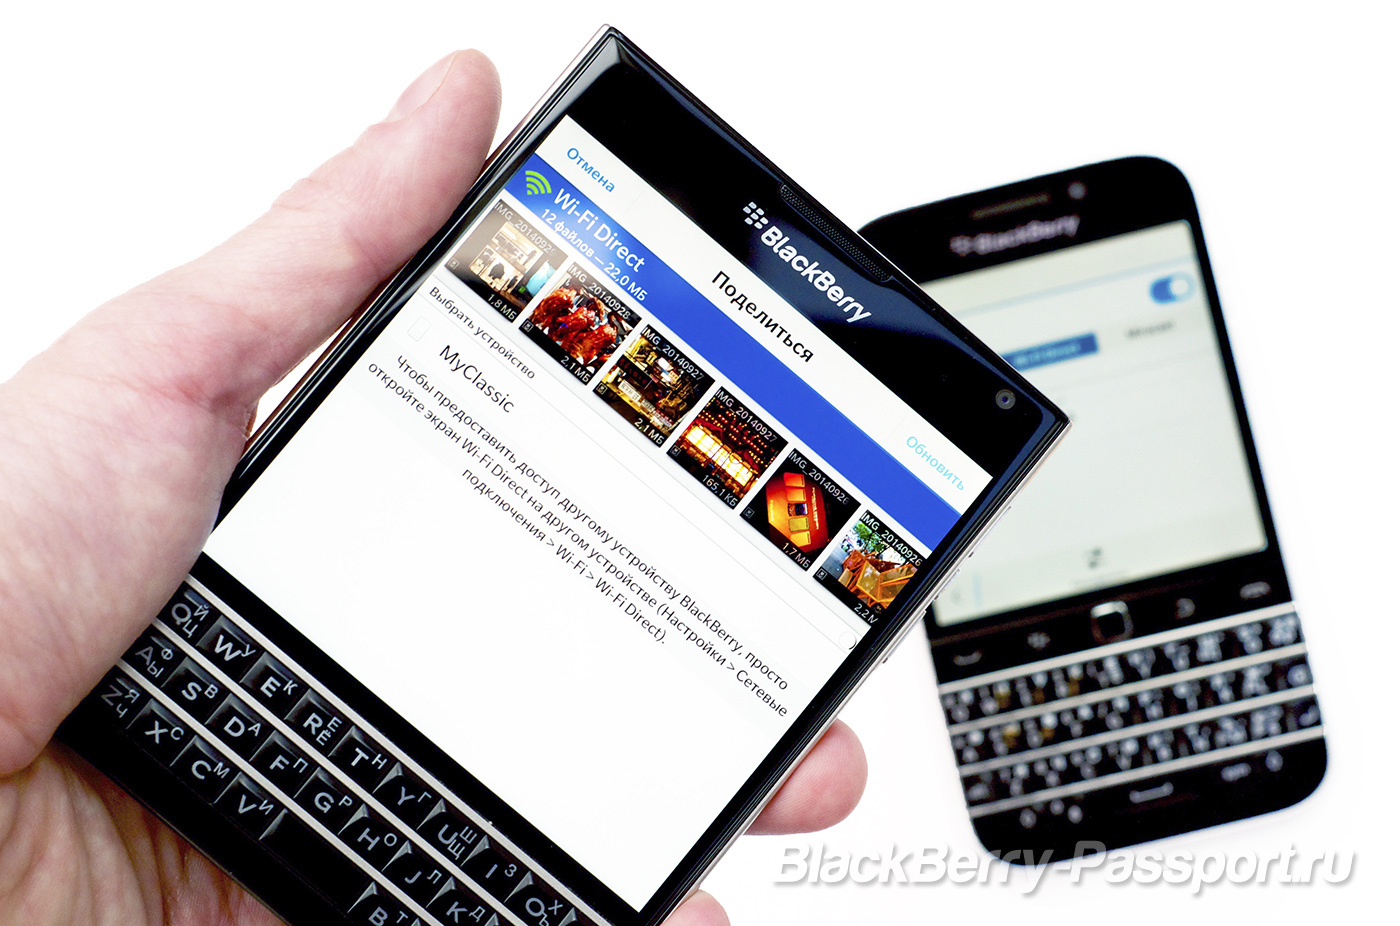 BlackBerry-Passport-FAQ-2